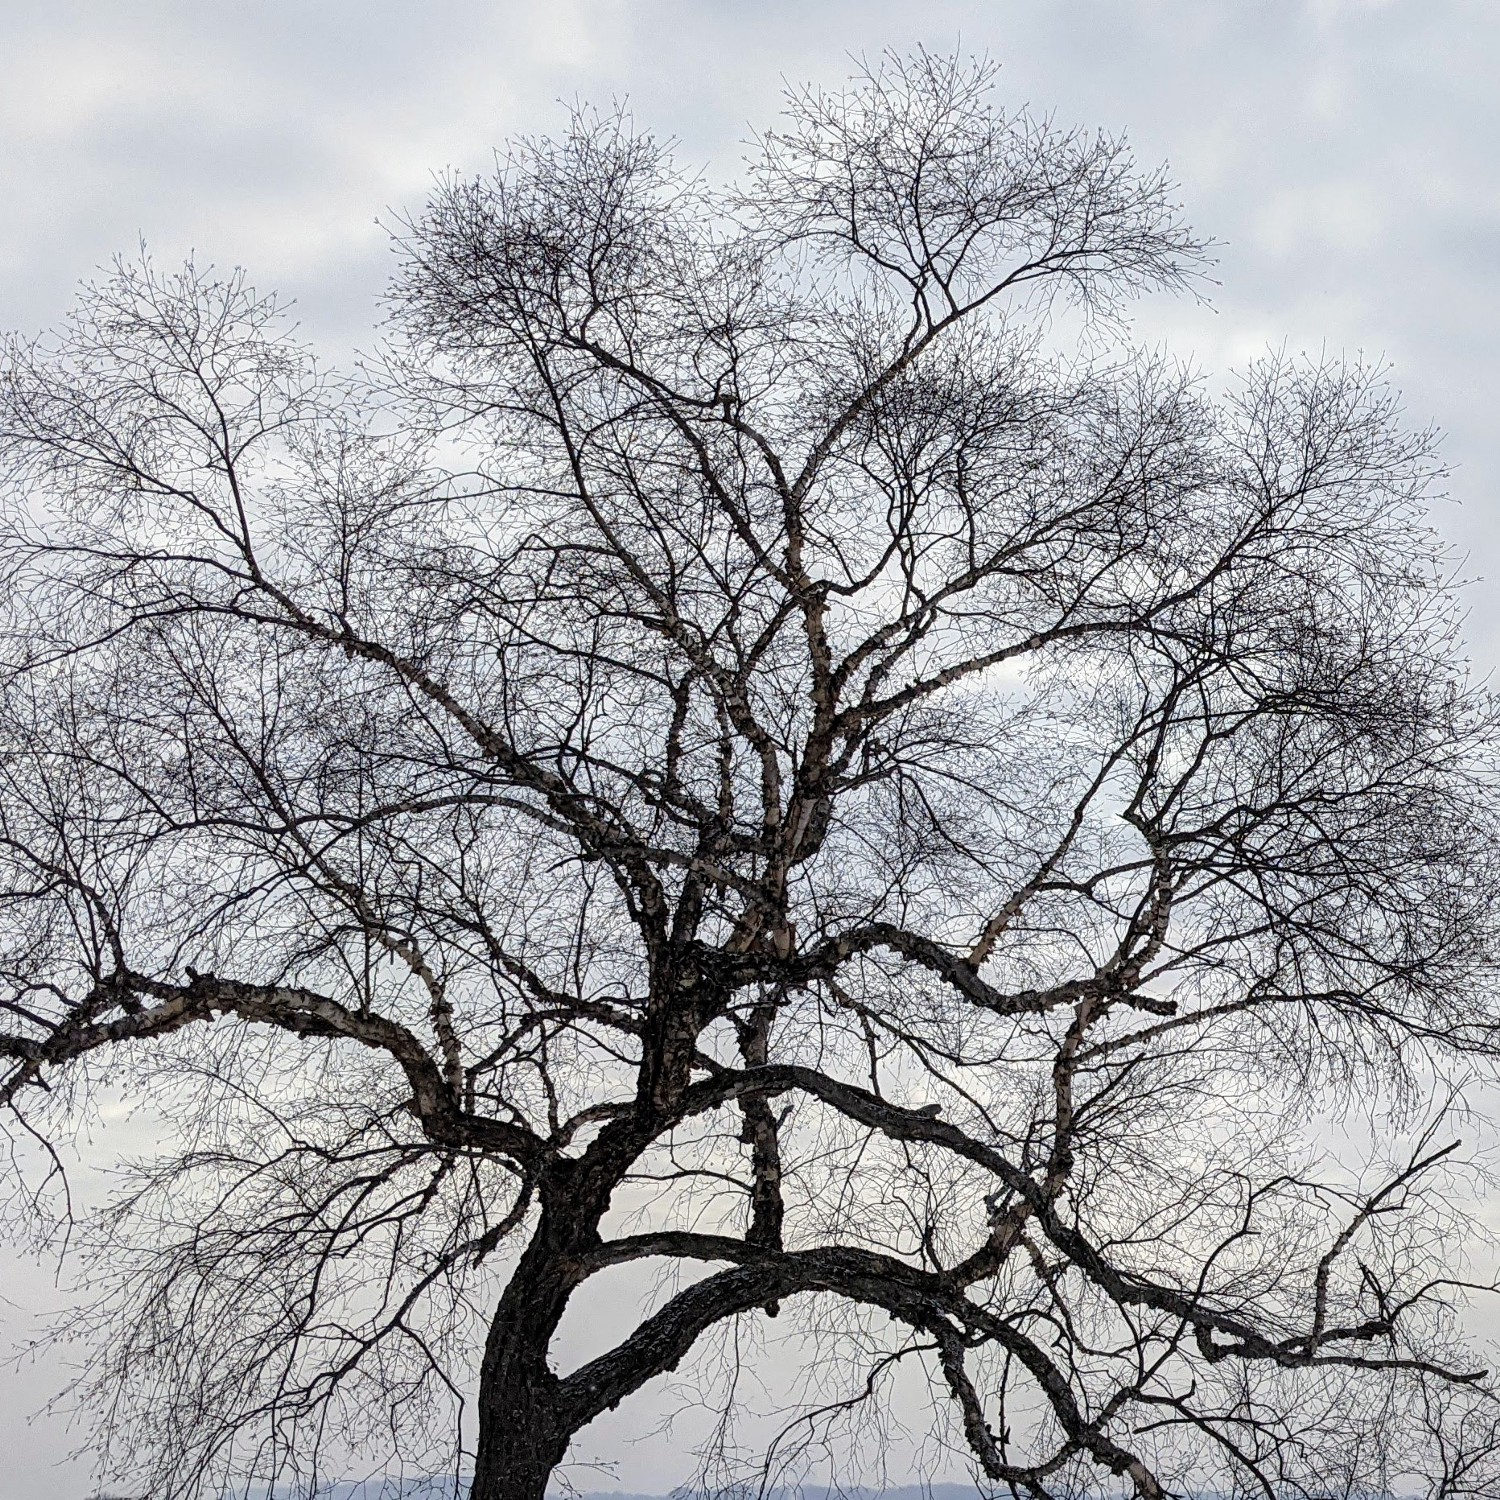 A tree with bare branches against a gray winter sky.